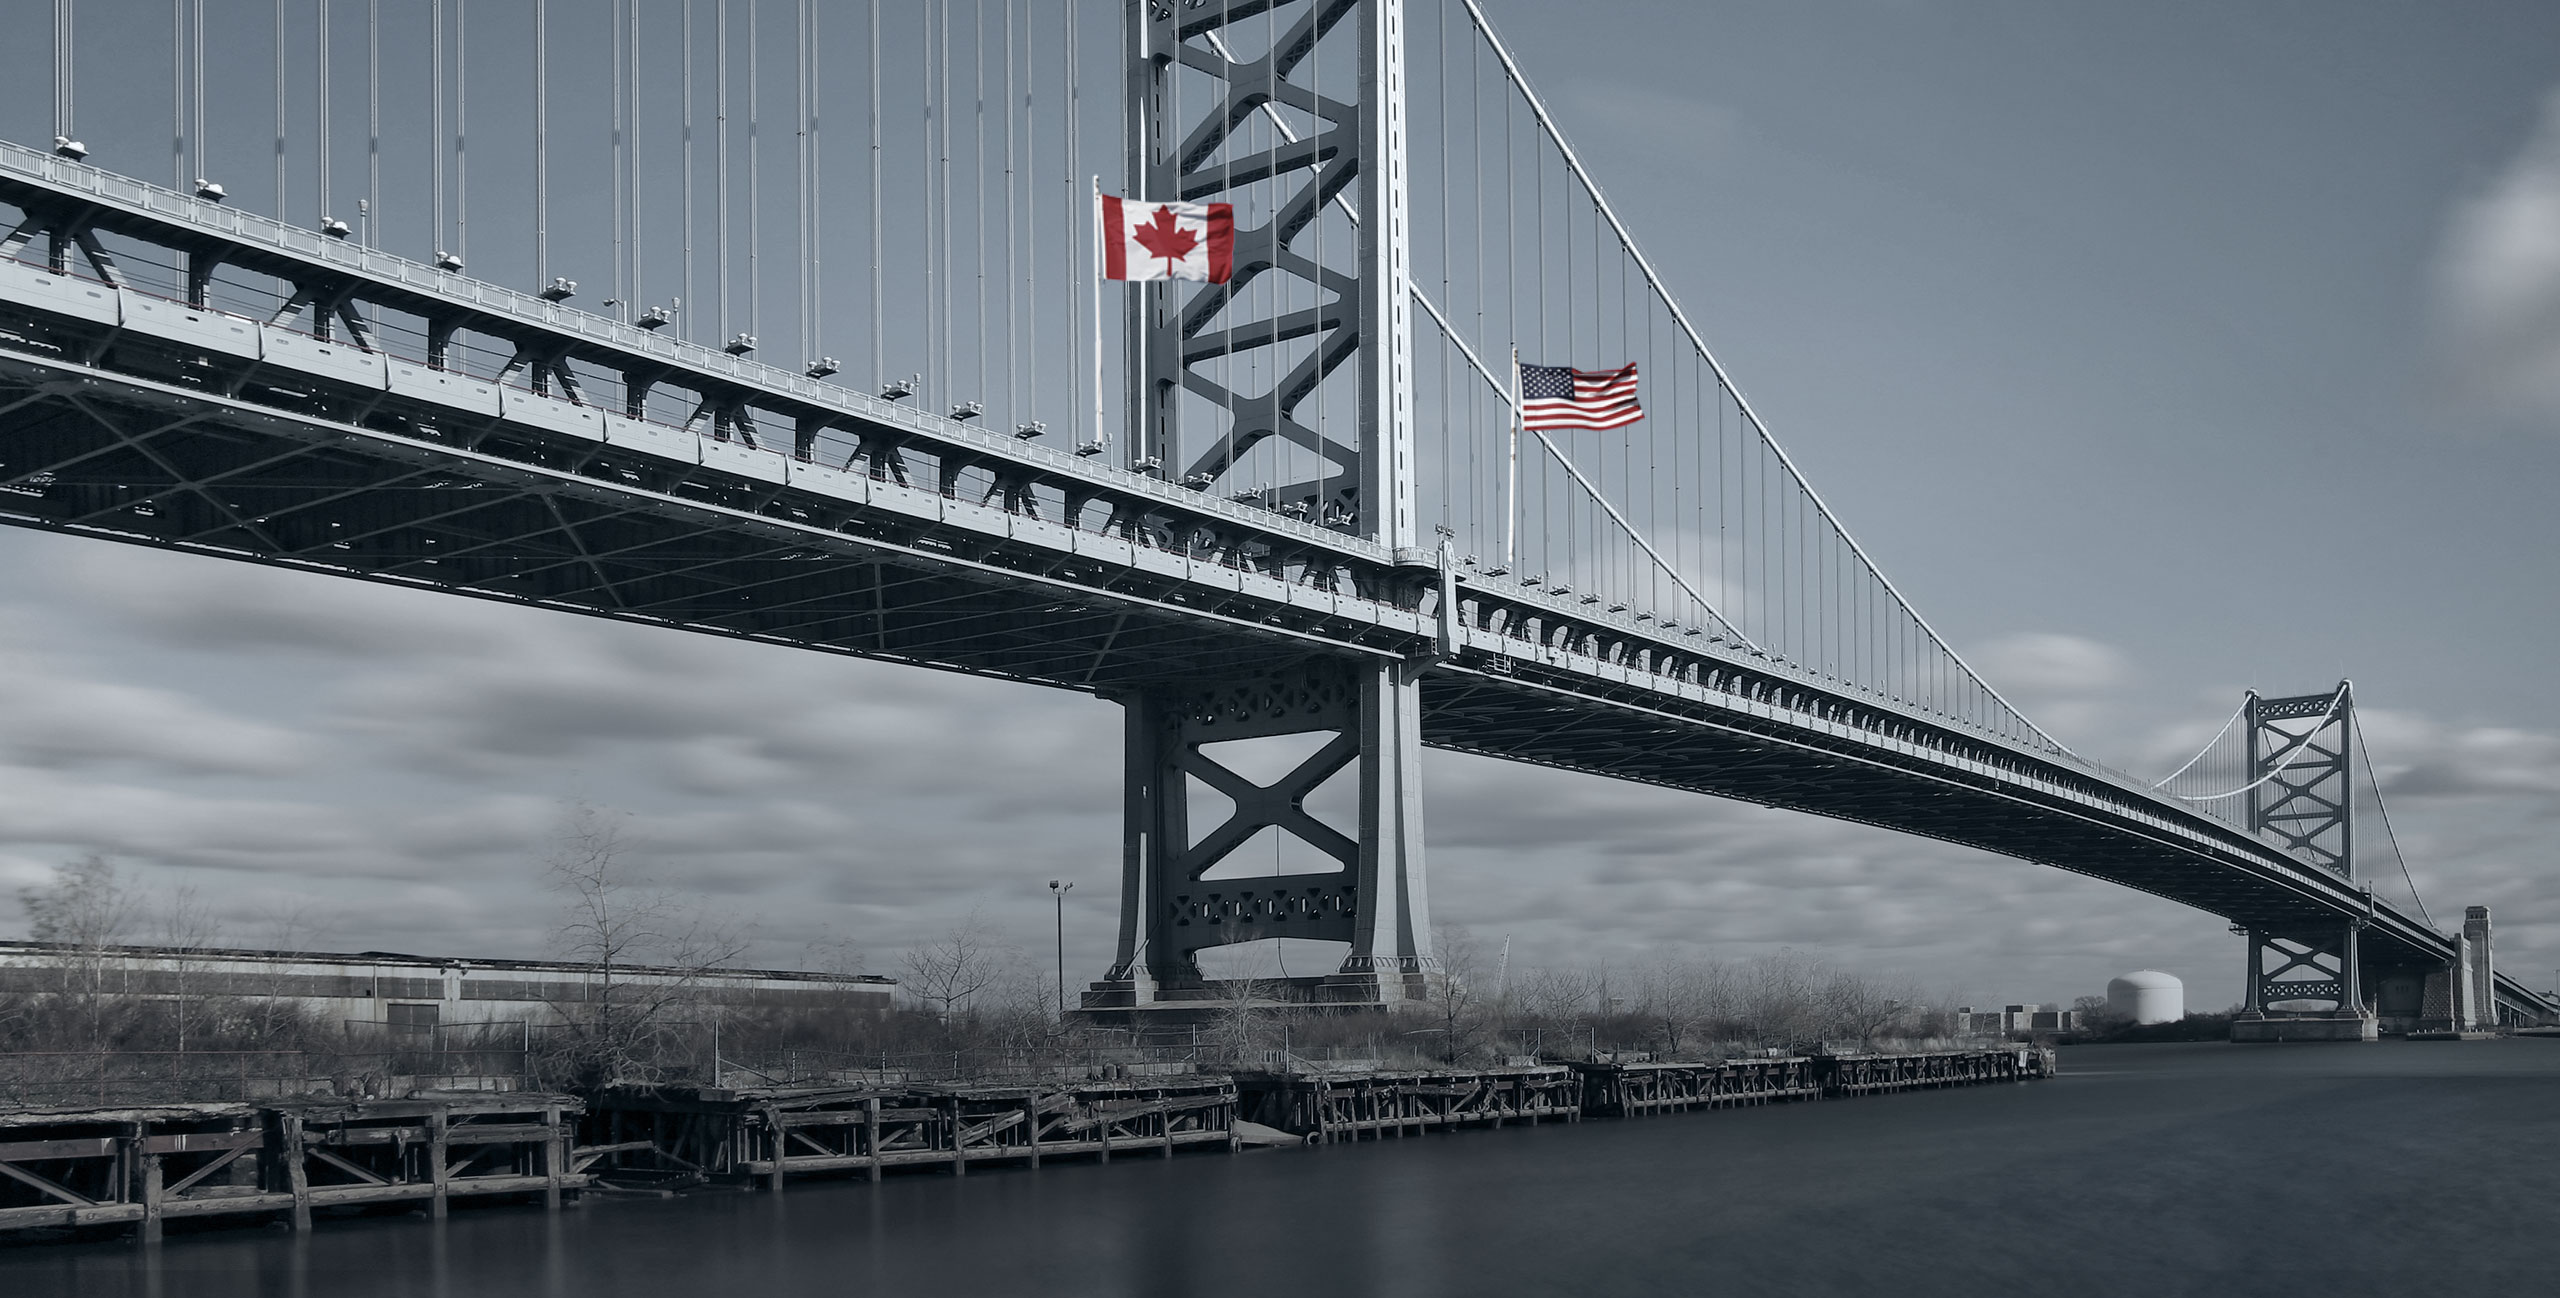 Bridge spanning between Canada and the USA